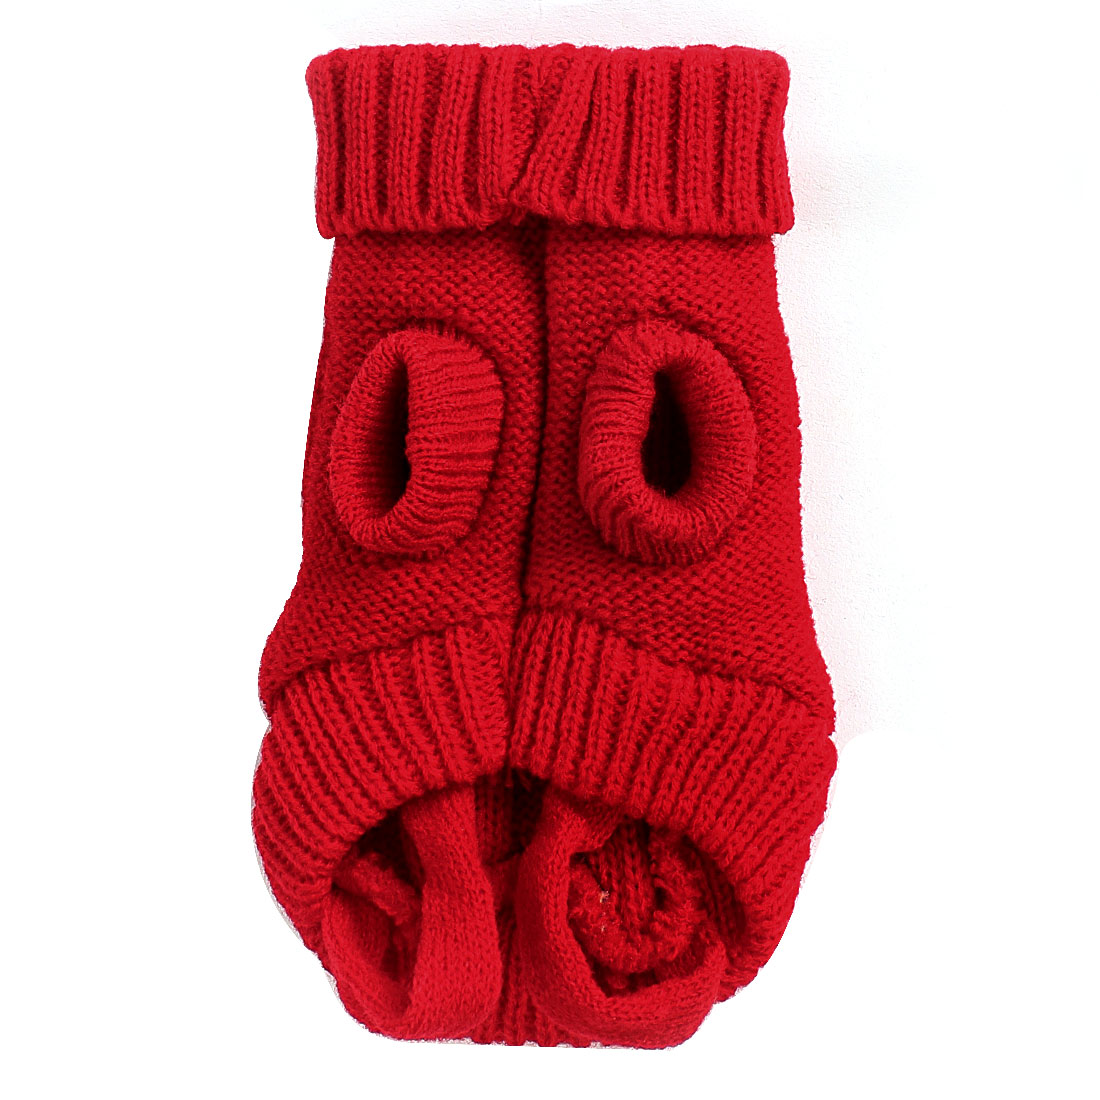 Unique Bargains Winter Warm Red Cable Knit Turtleneck Pet Dog Puppy Clothing Sweater Size XS